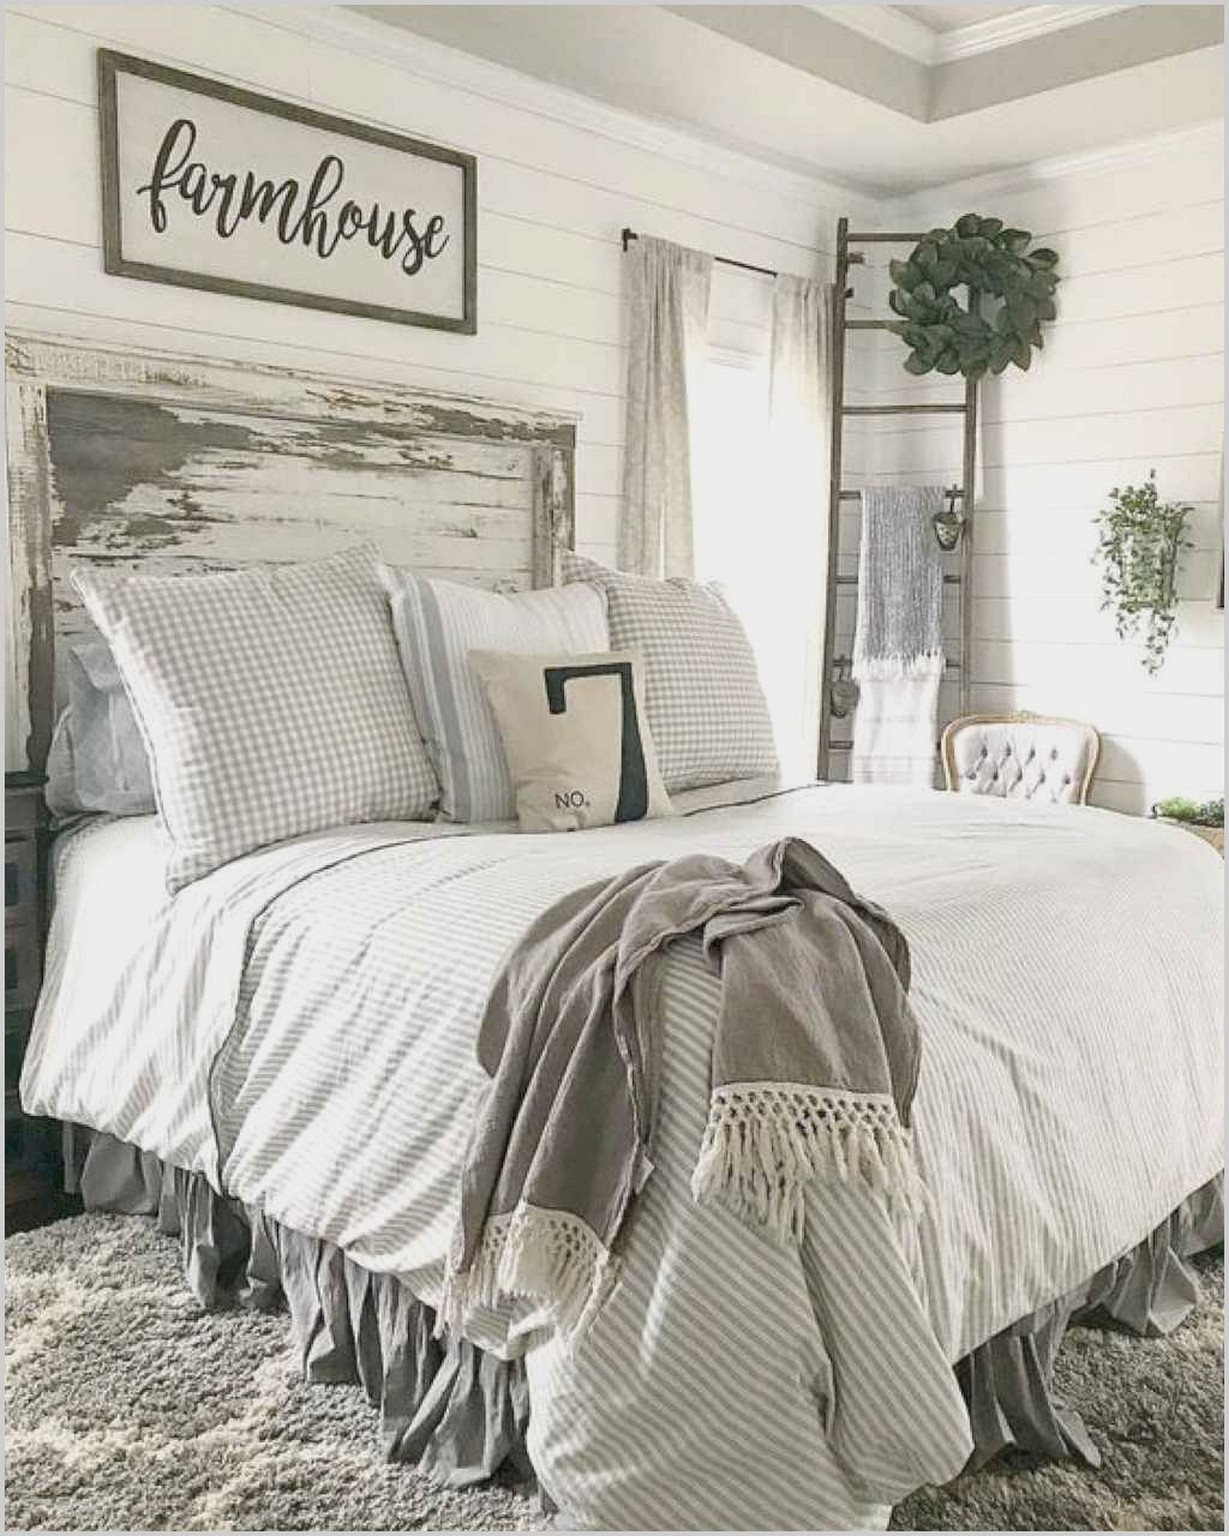 64 Rustic Bedroom Furniture How to Look Elegance Home Decor 45